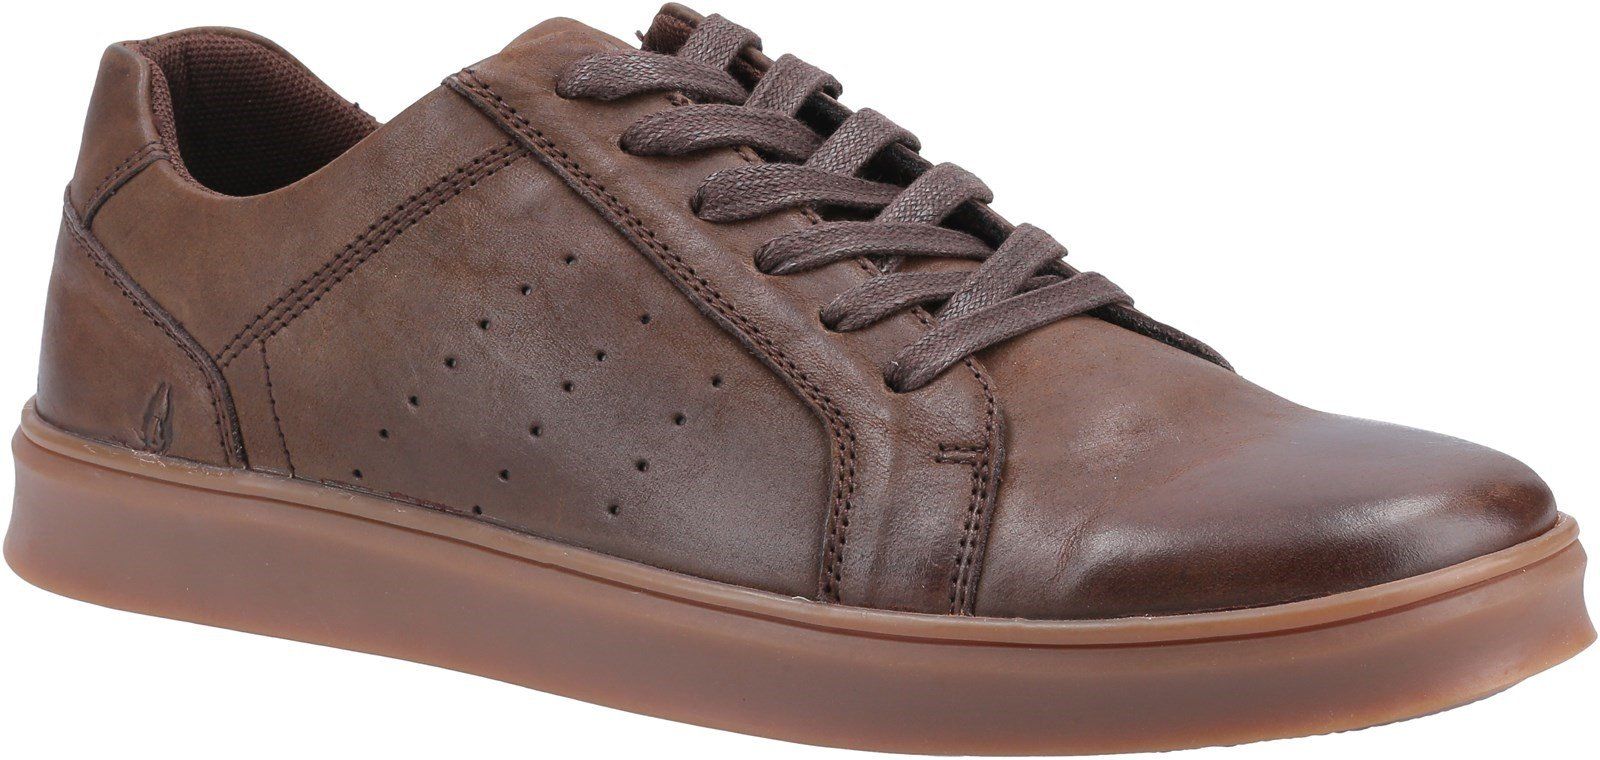 Hush Puppies Men's Mason Lace Trainer Various Colours 31973 - Coffee 7